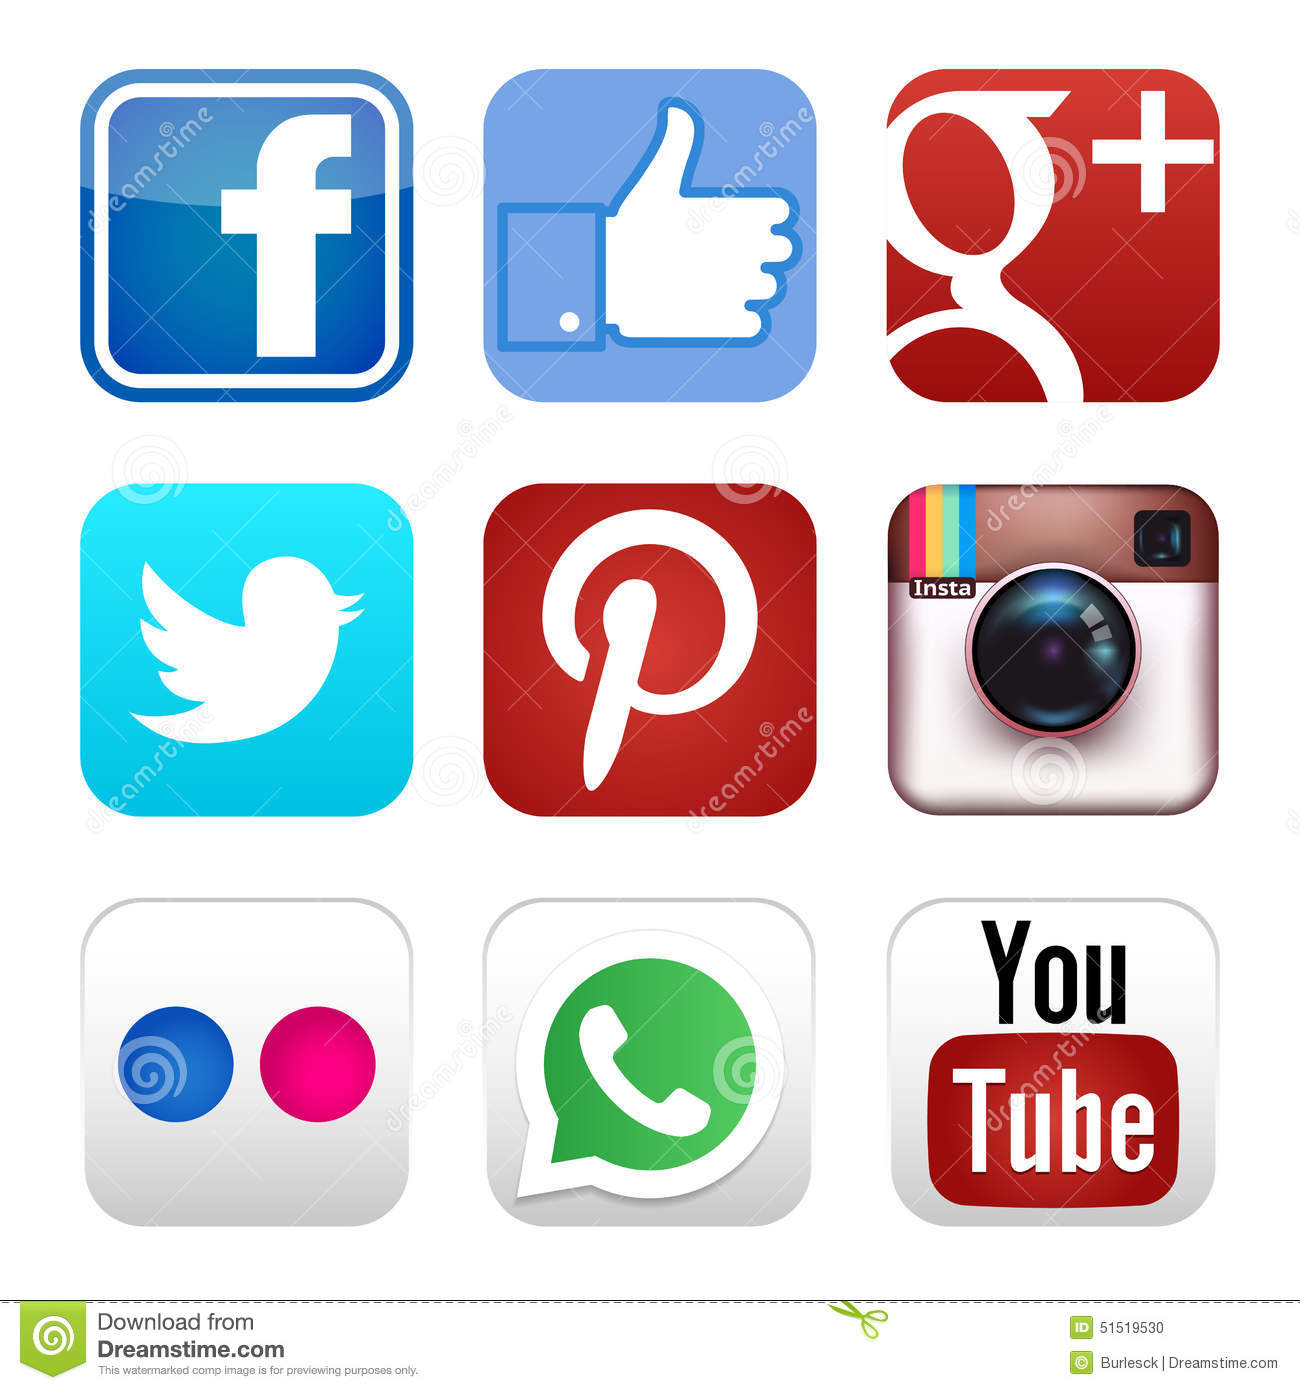 social-media-icons-set-isolated-white-background-51519530.jpg